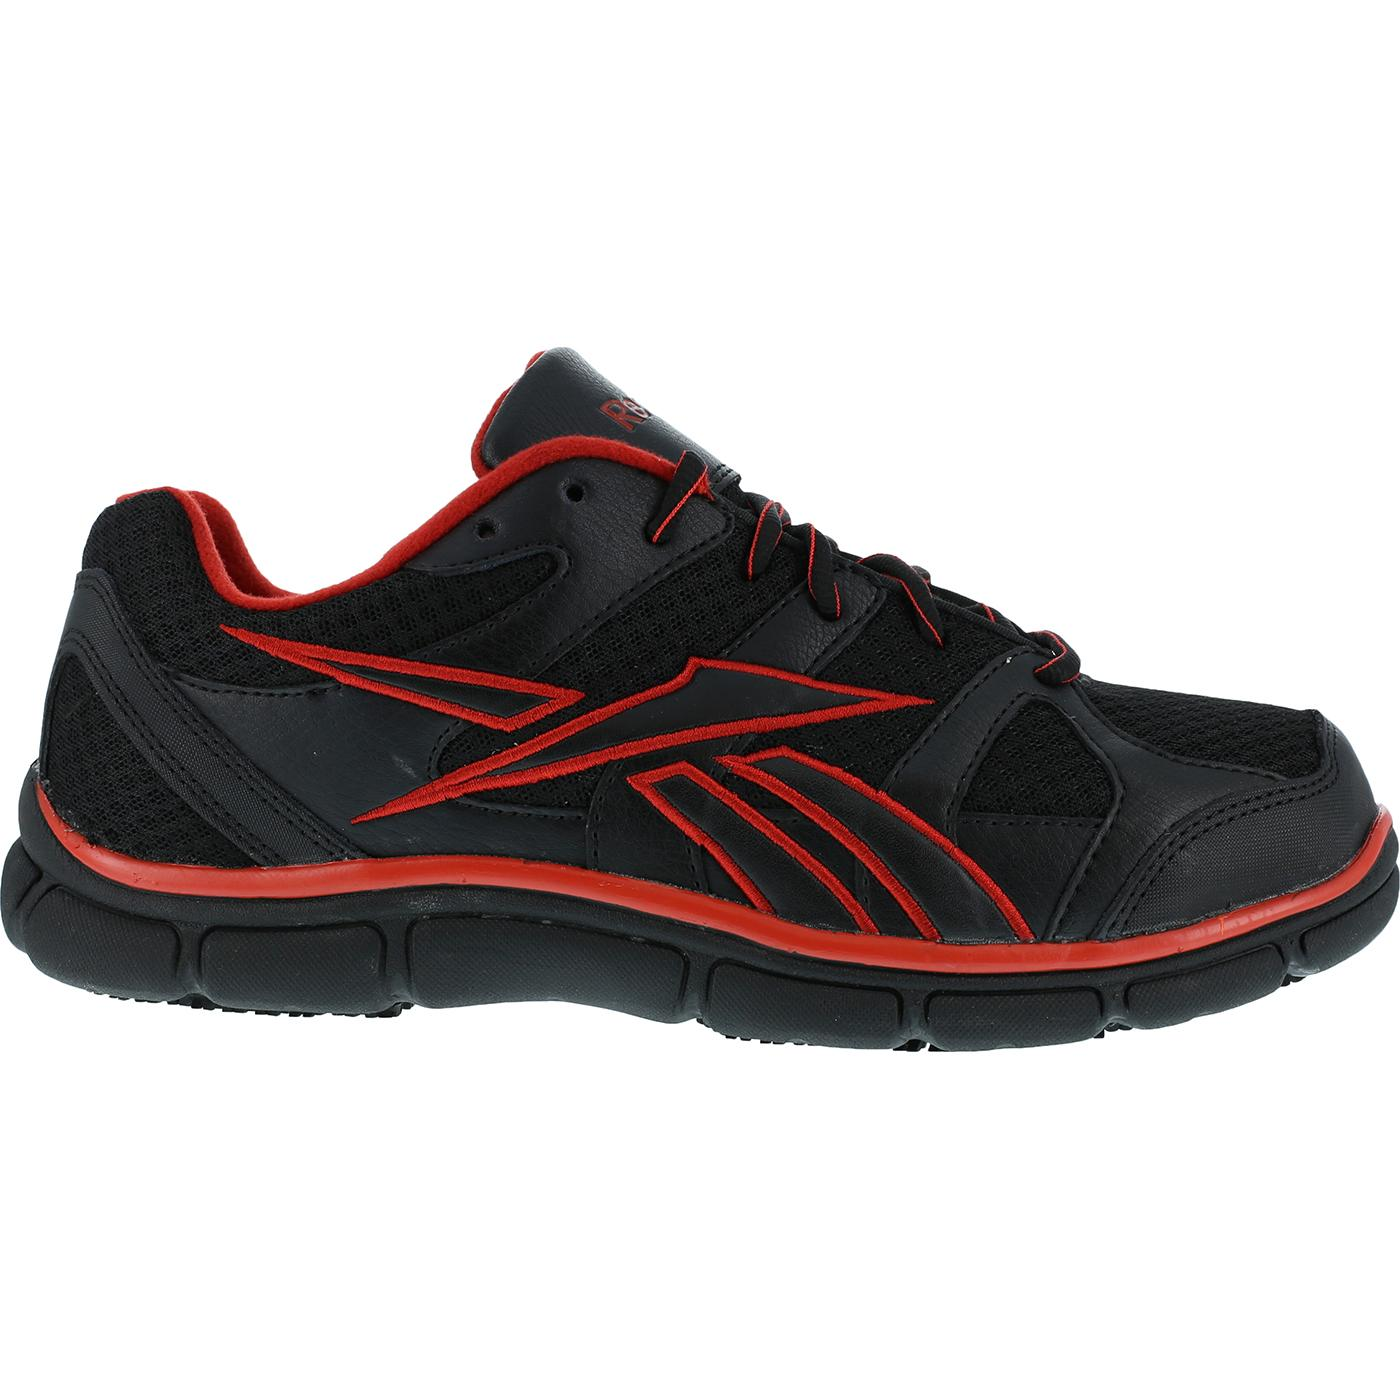 Reebok Shoes Black Color